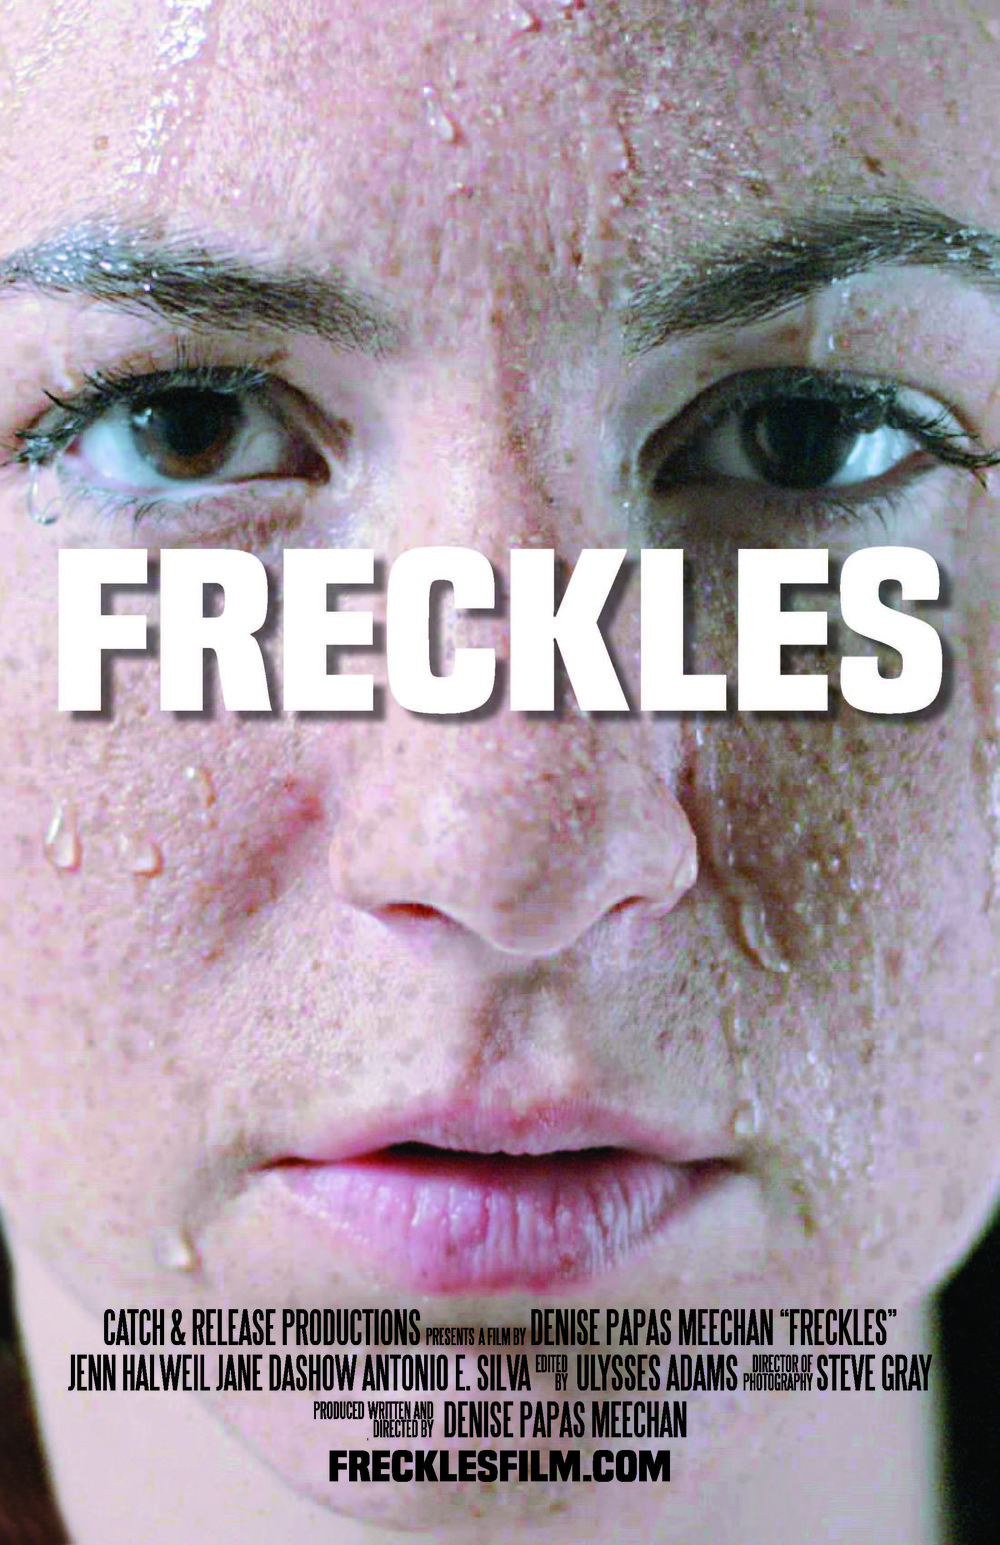 freckles poster white with drop shadow_11_18_15.jpg